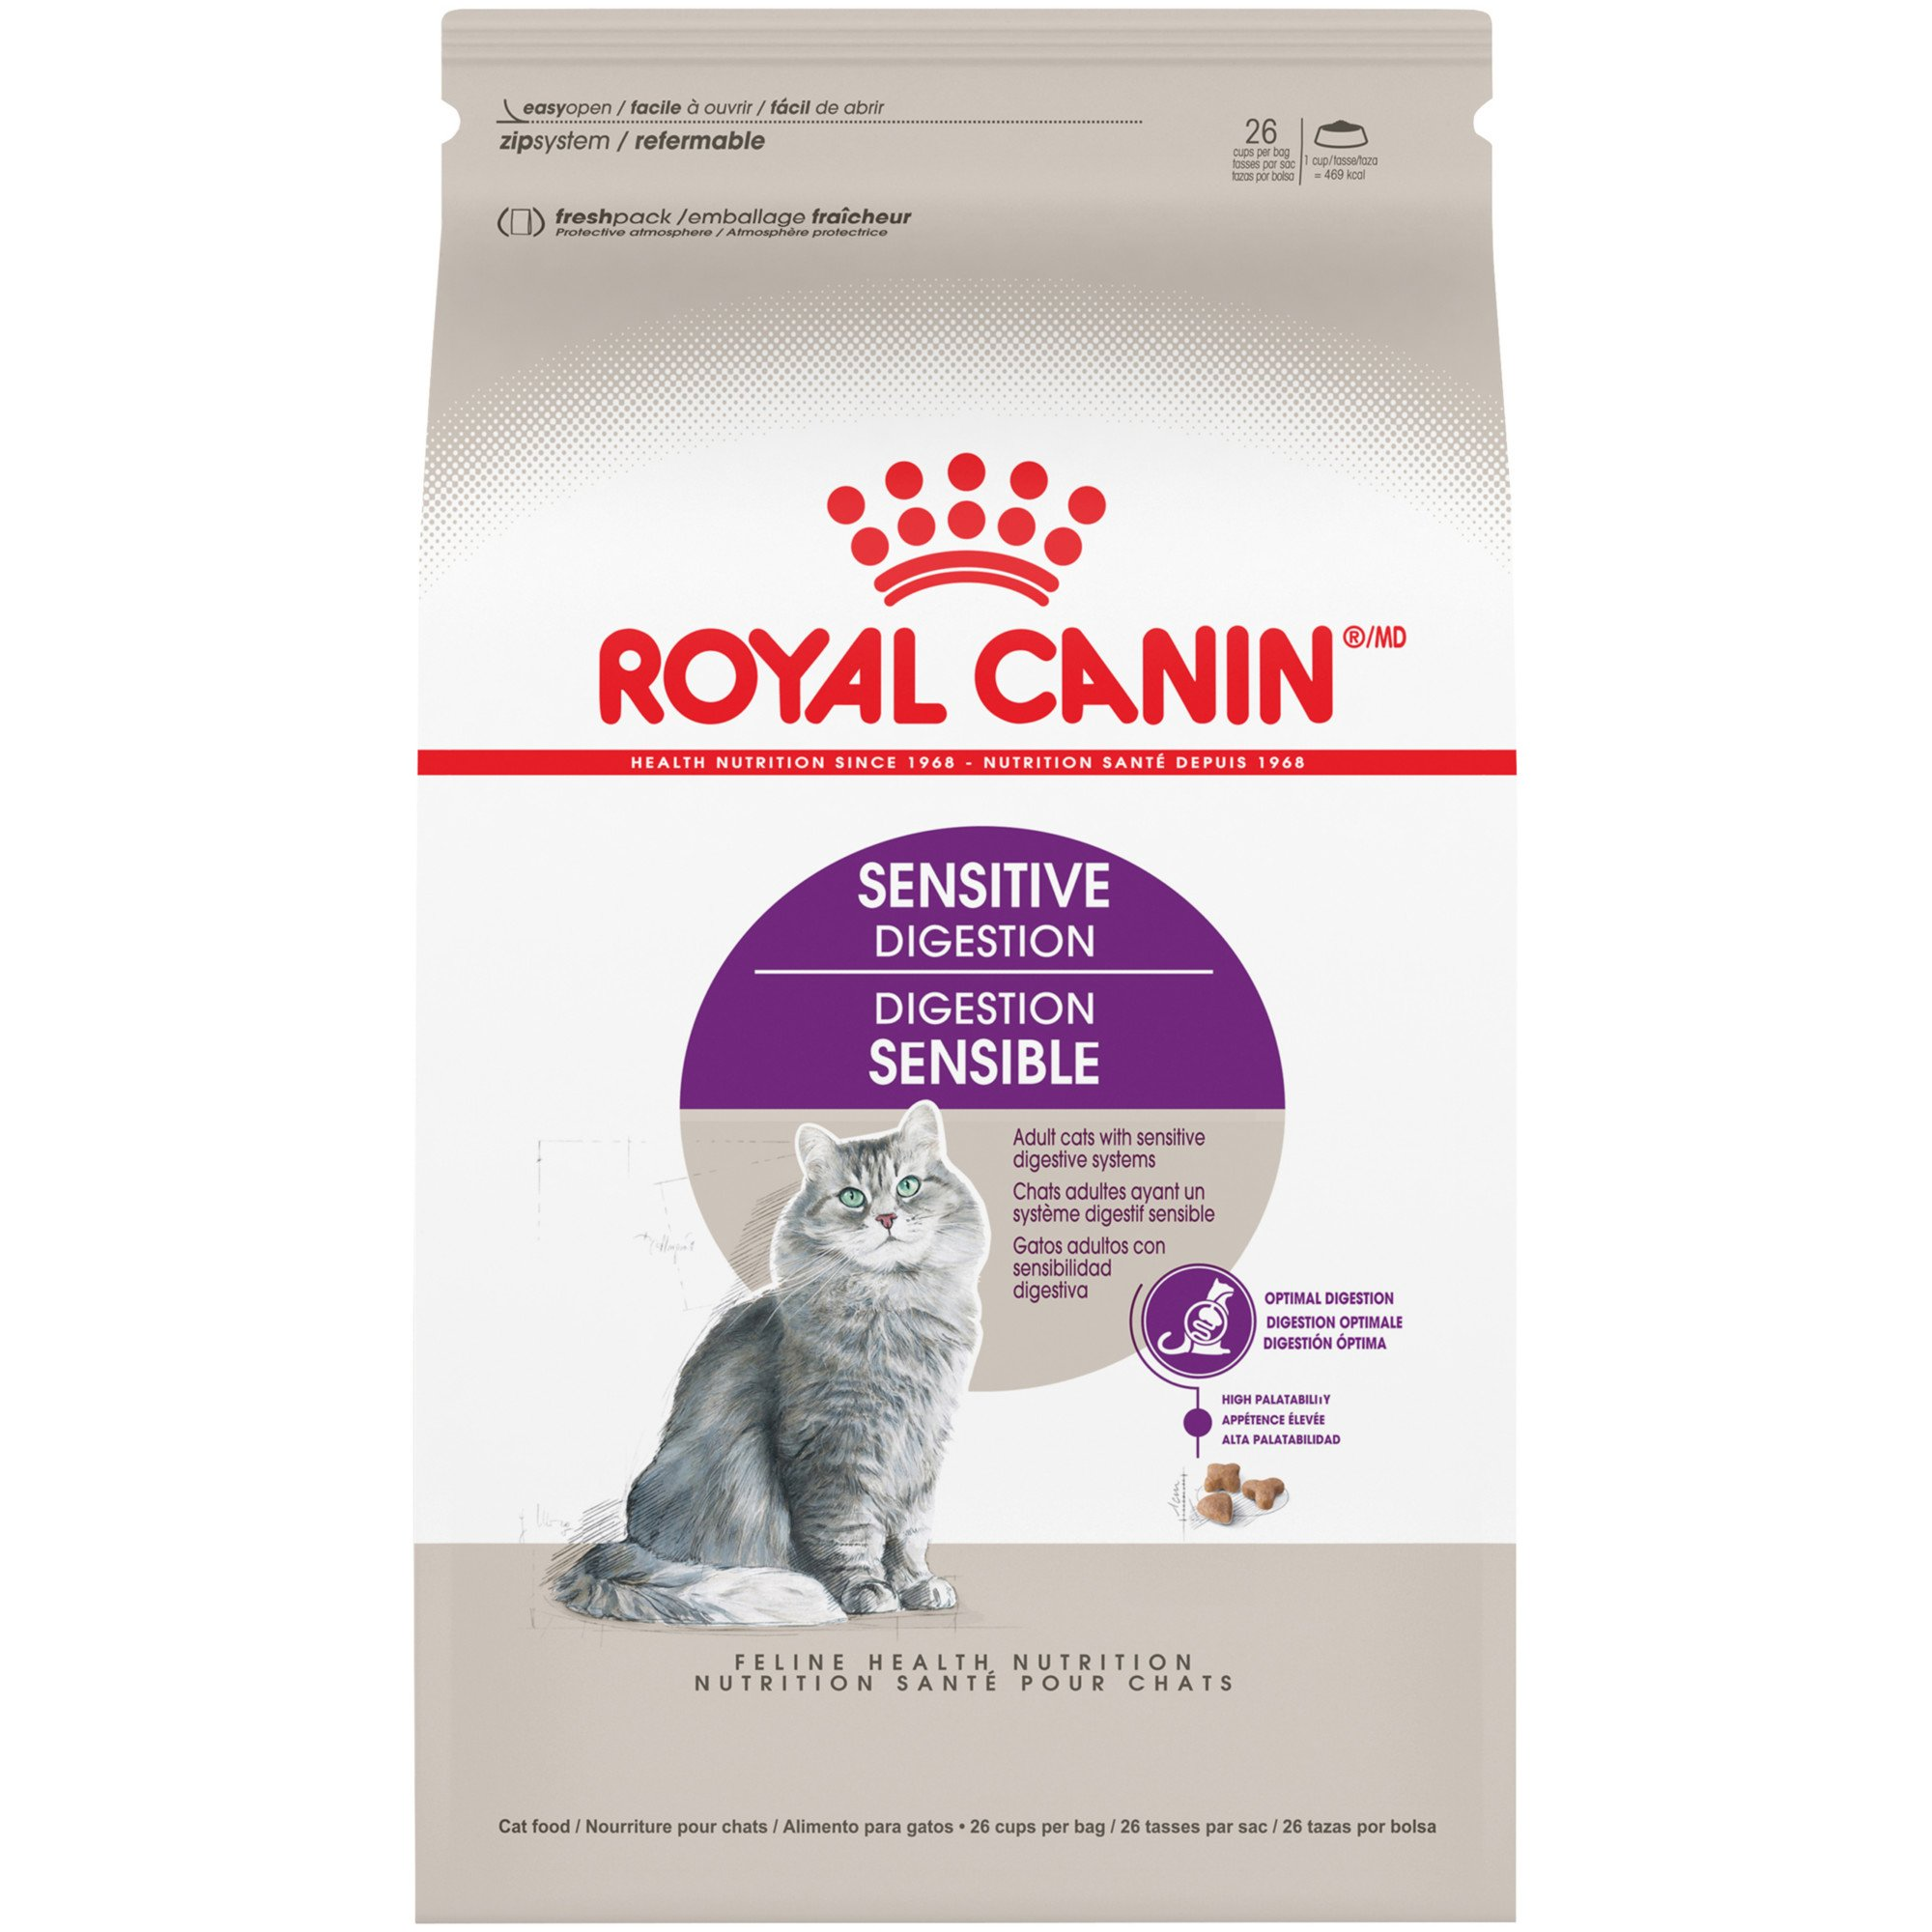 royal canin feline health nutrition sensitive digestion. Black Bedroom Furniture Sets. Home Design Ideas